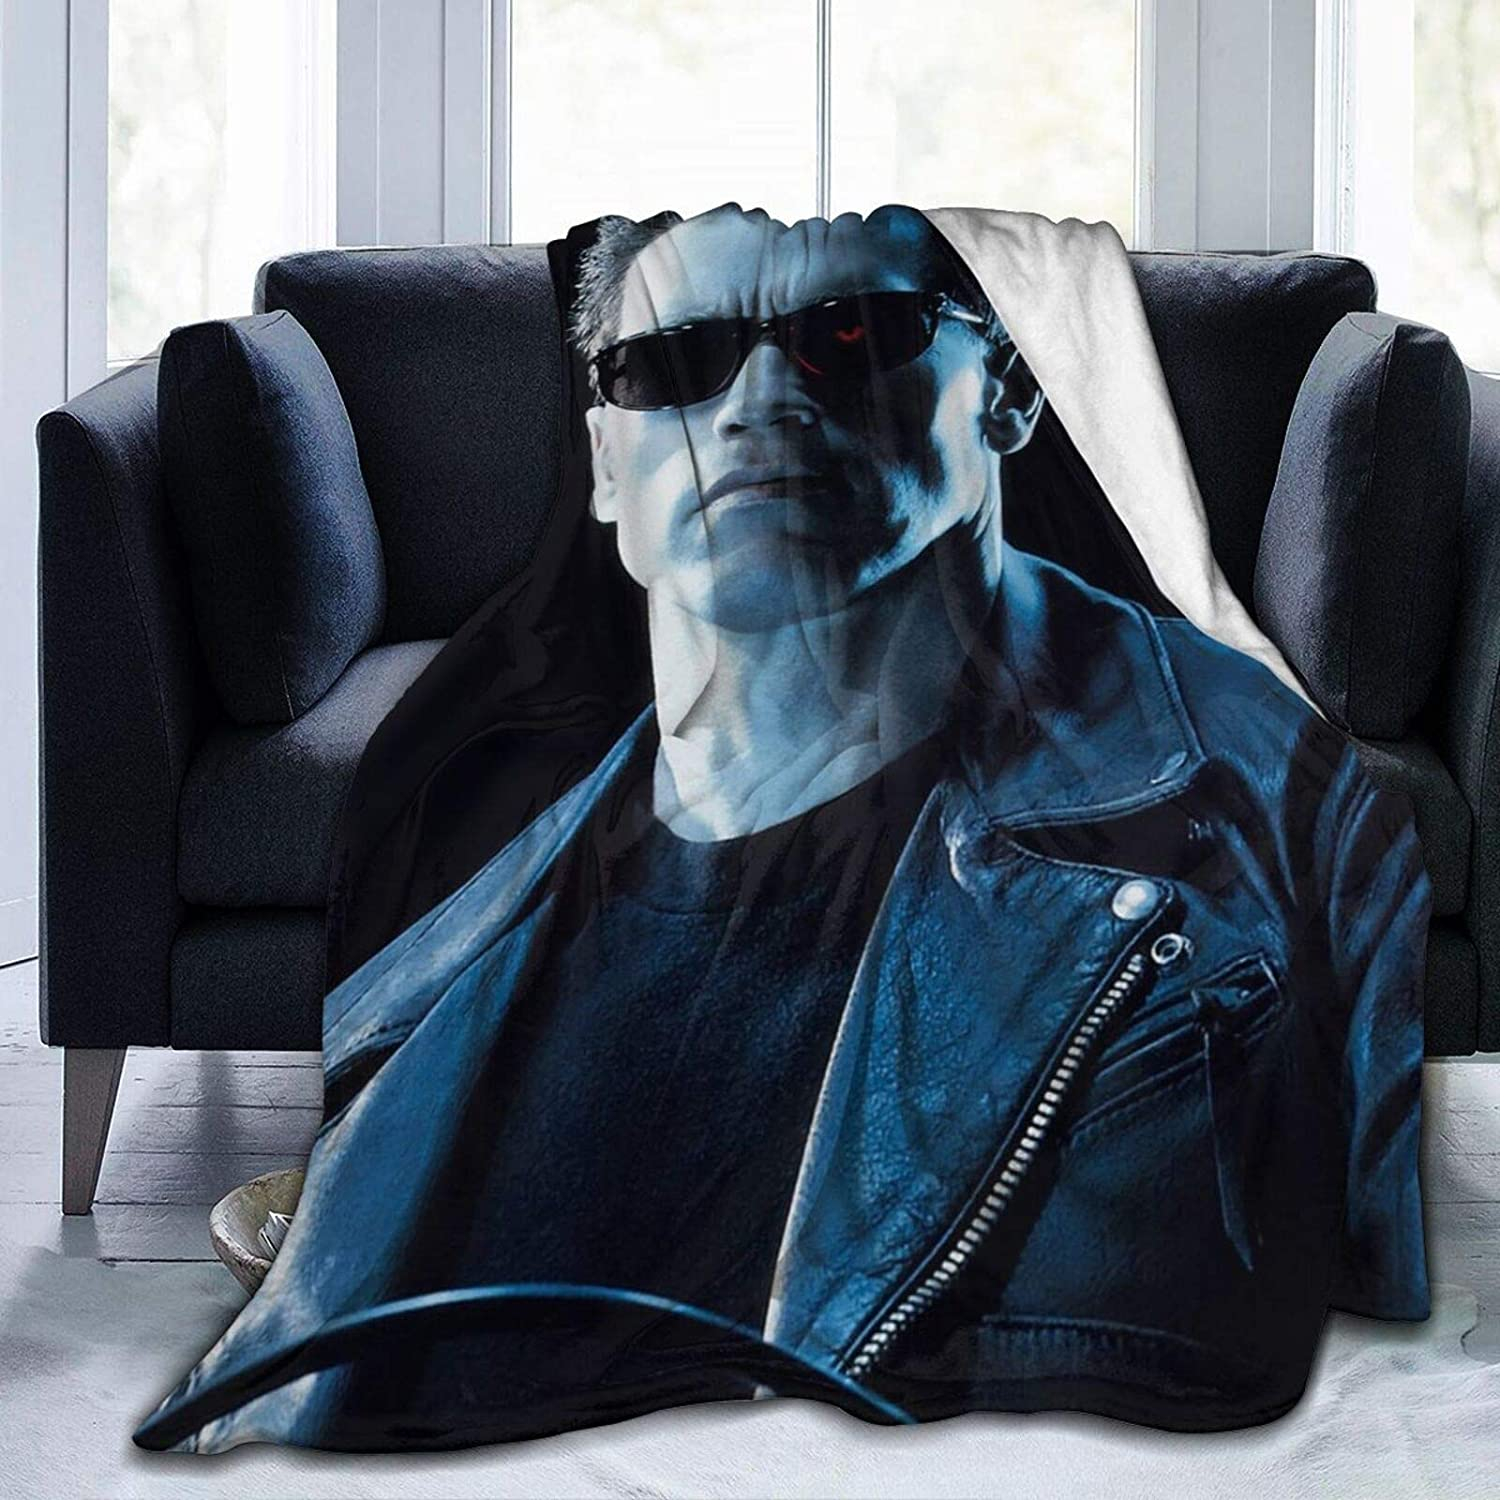 The Terminator Ultra Soft Micro Fleece Blanket Throw Blanket Lightweight Soft and Warm for Men Women Kids Couch and Bed Home decor50 x40